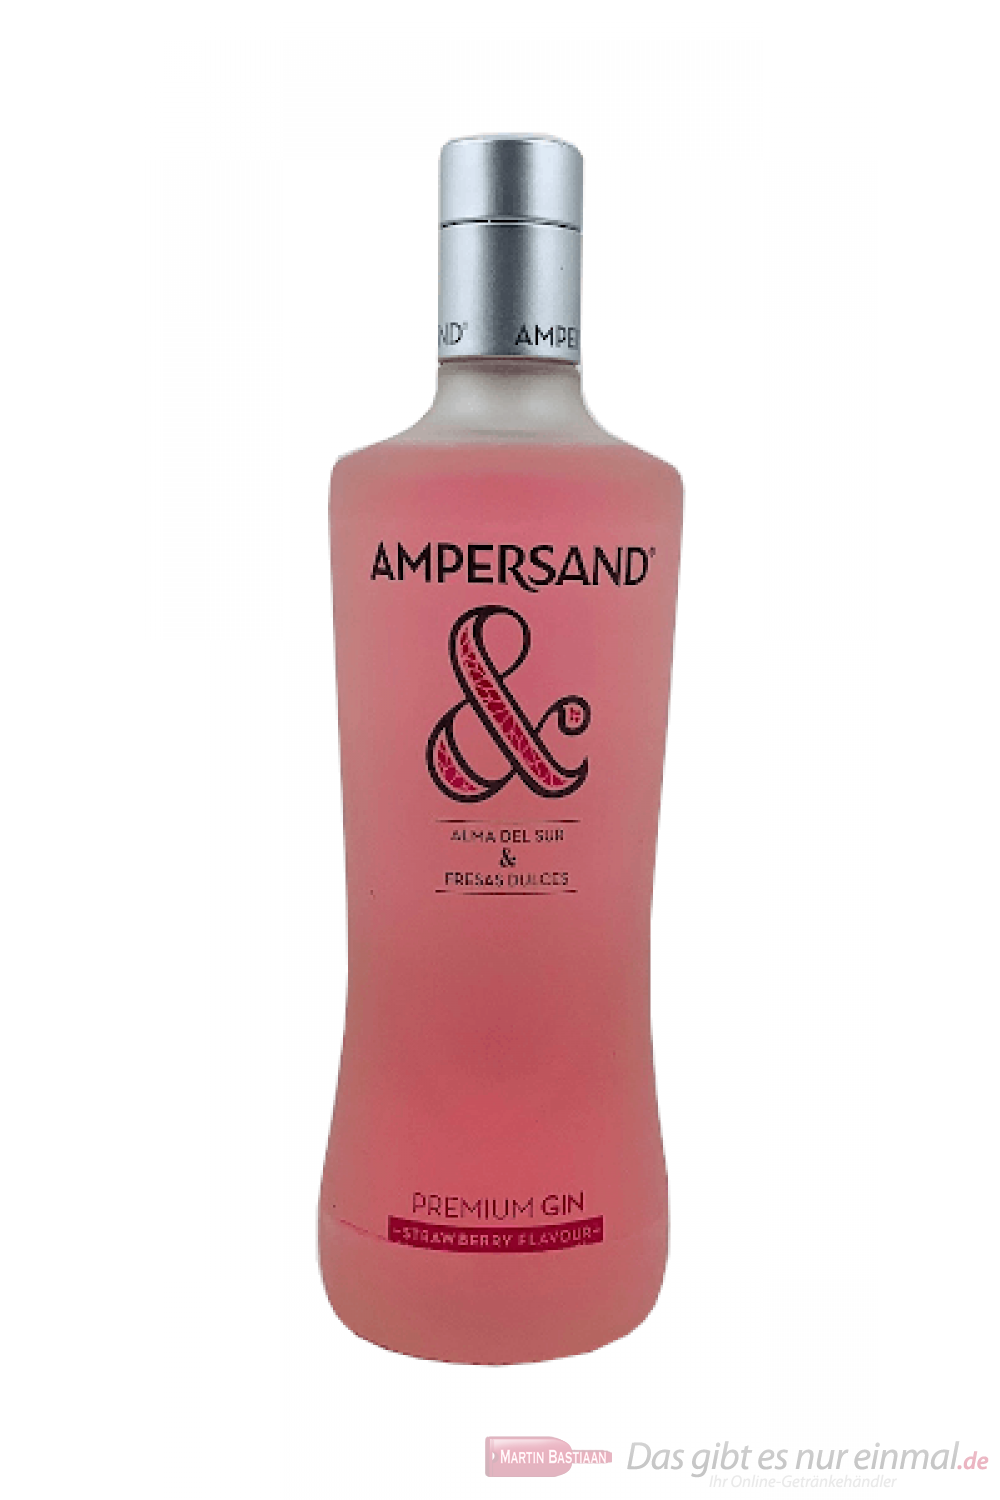 Ampersand Pink Gin Strawberry Flavour 0,7l